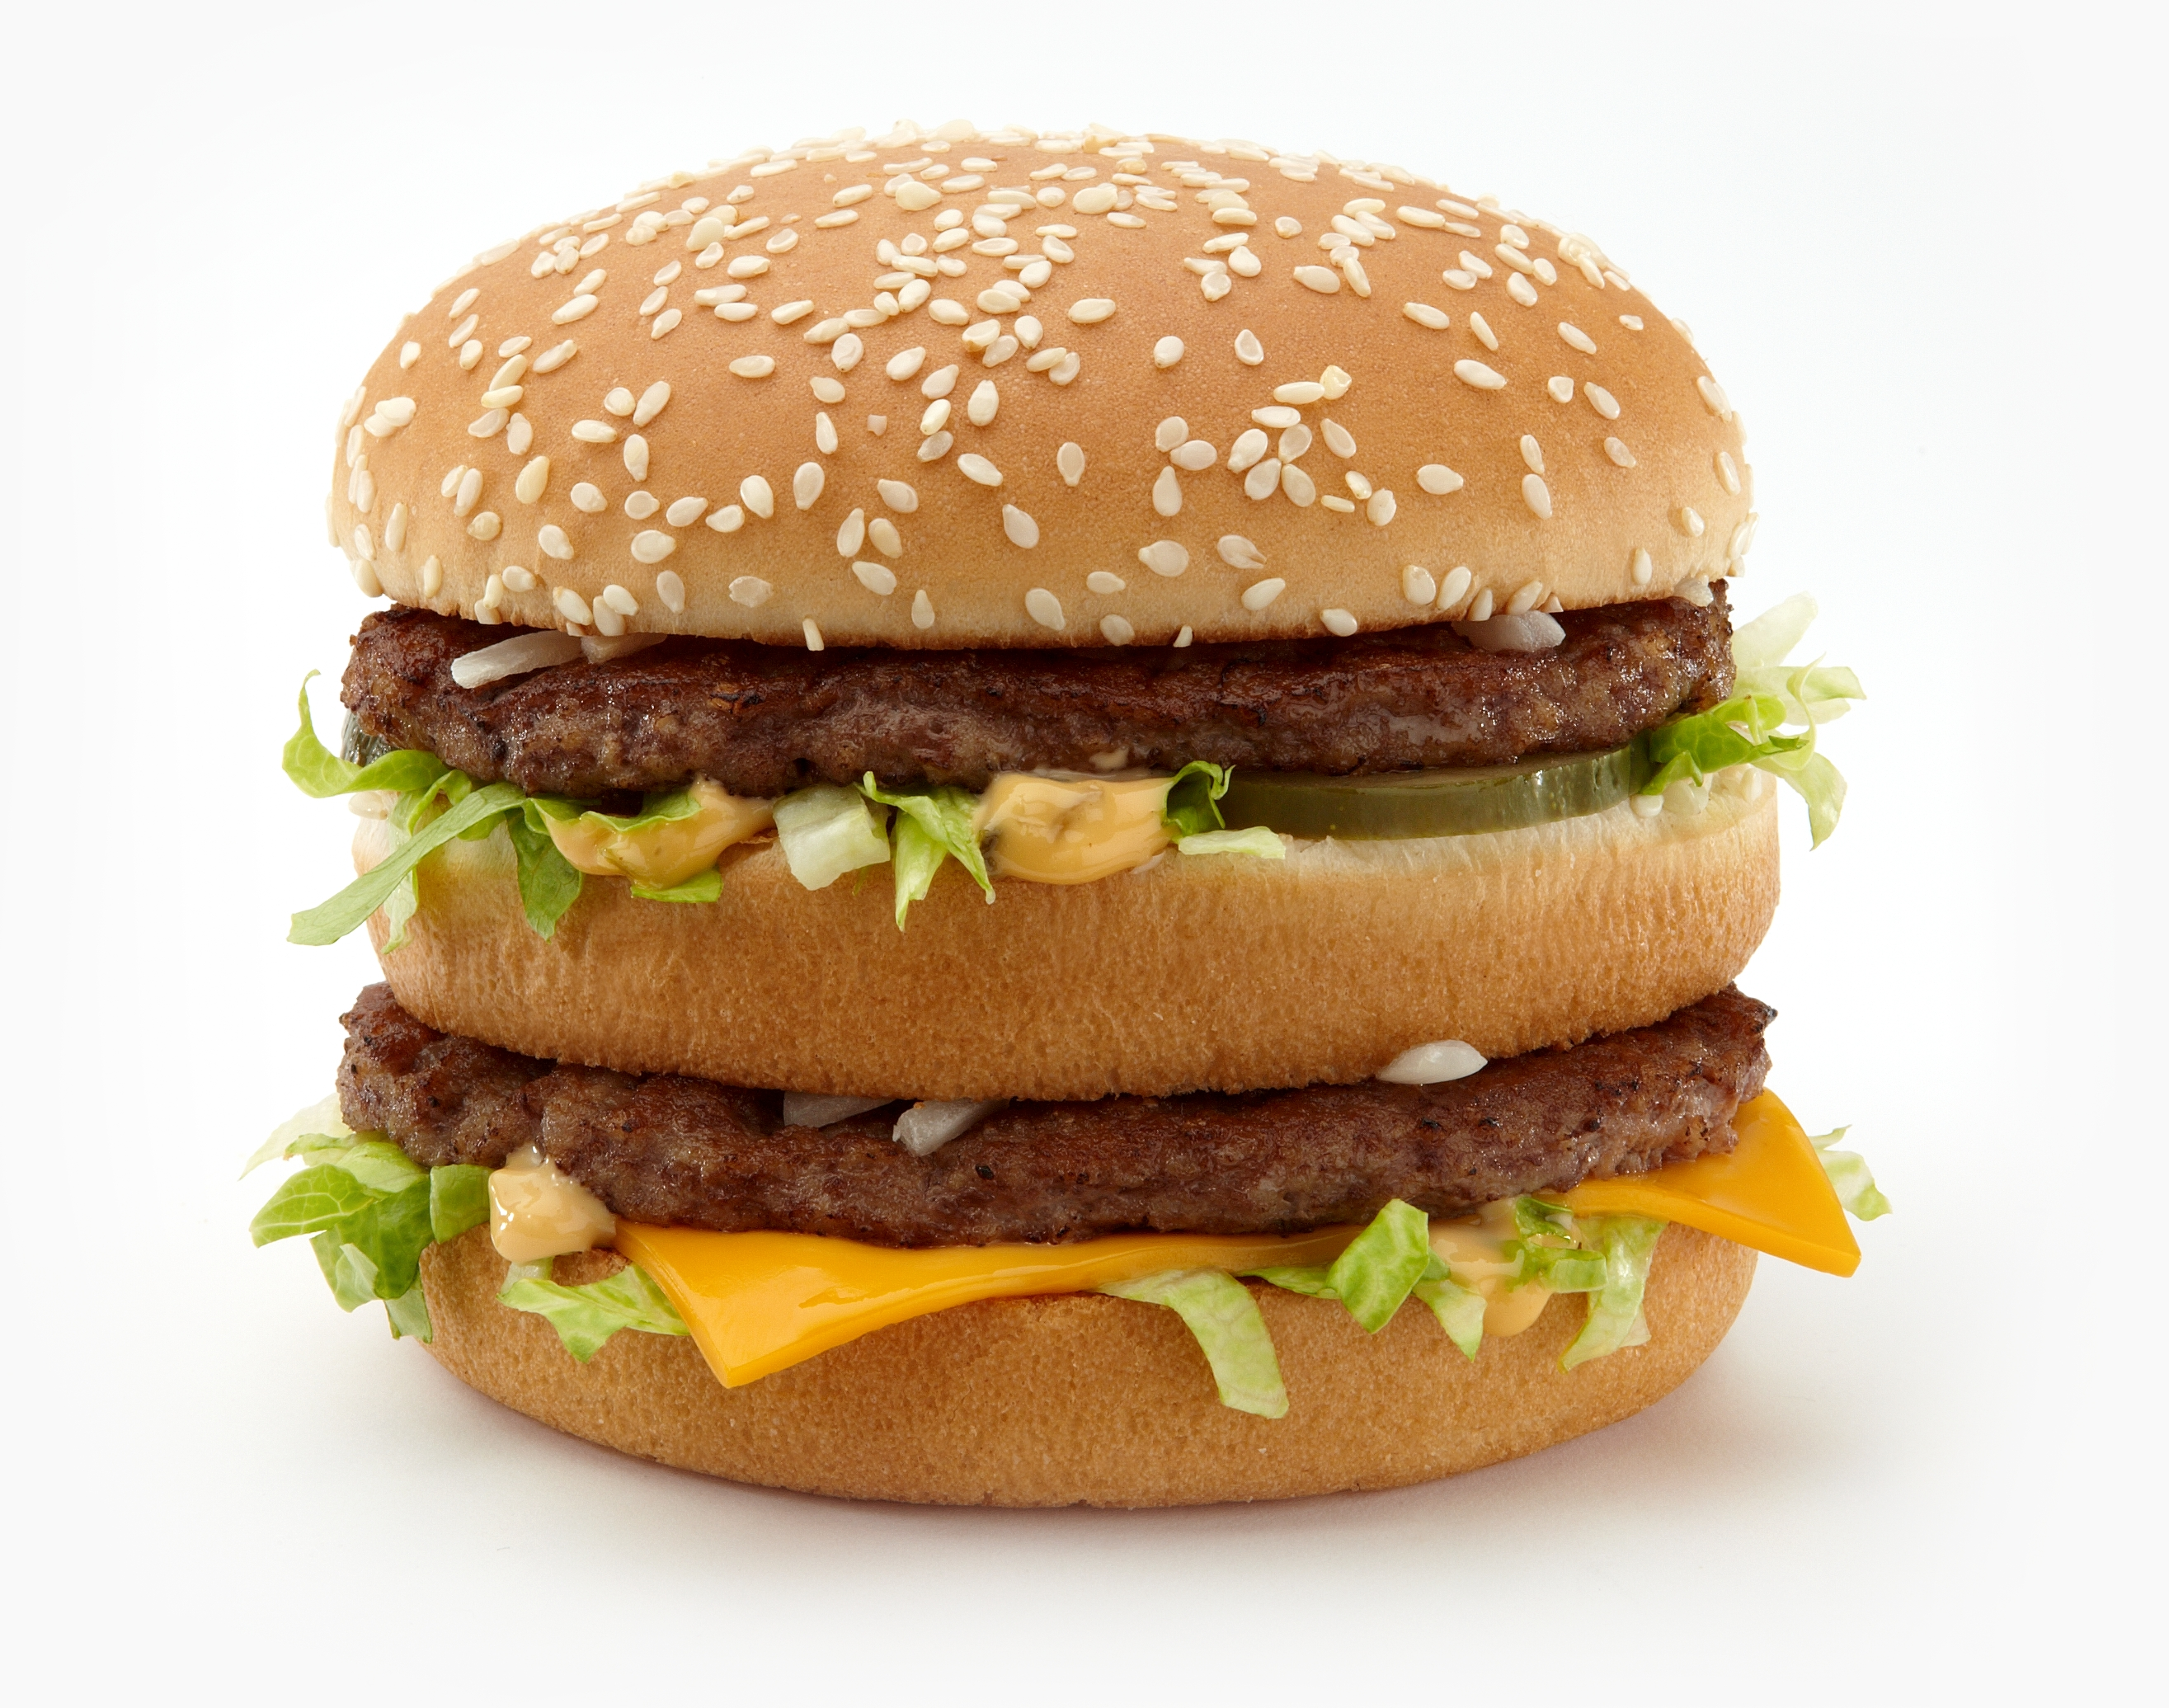 The classic Big Mac is being given a twist. (Credit: McDonald's)